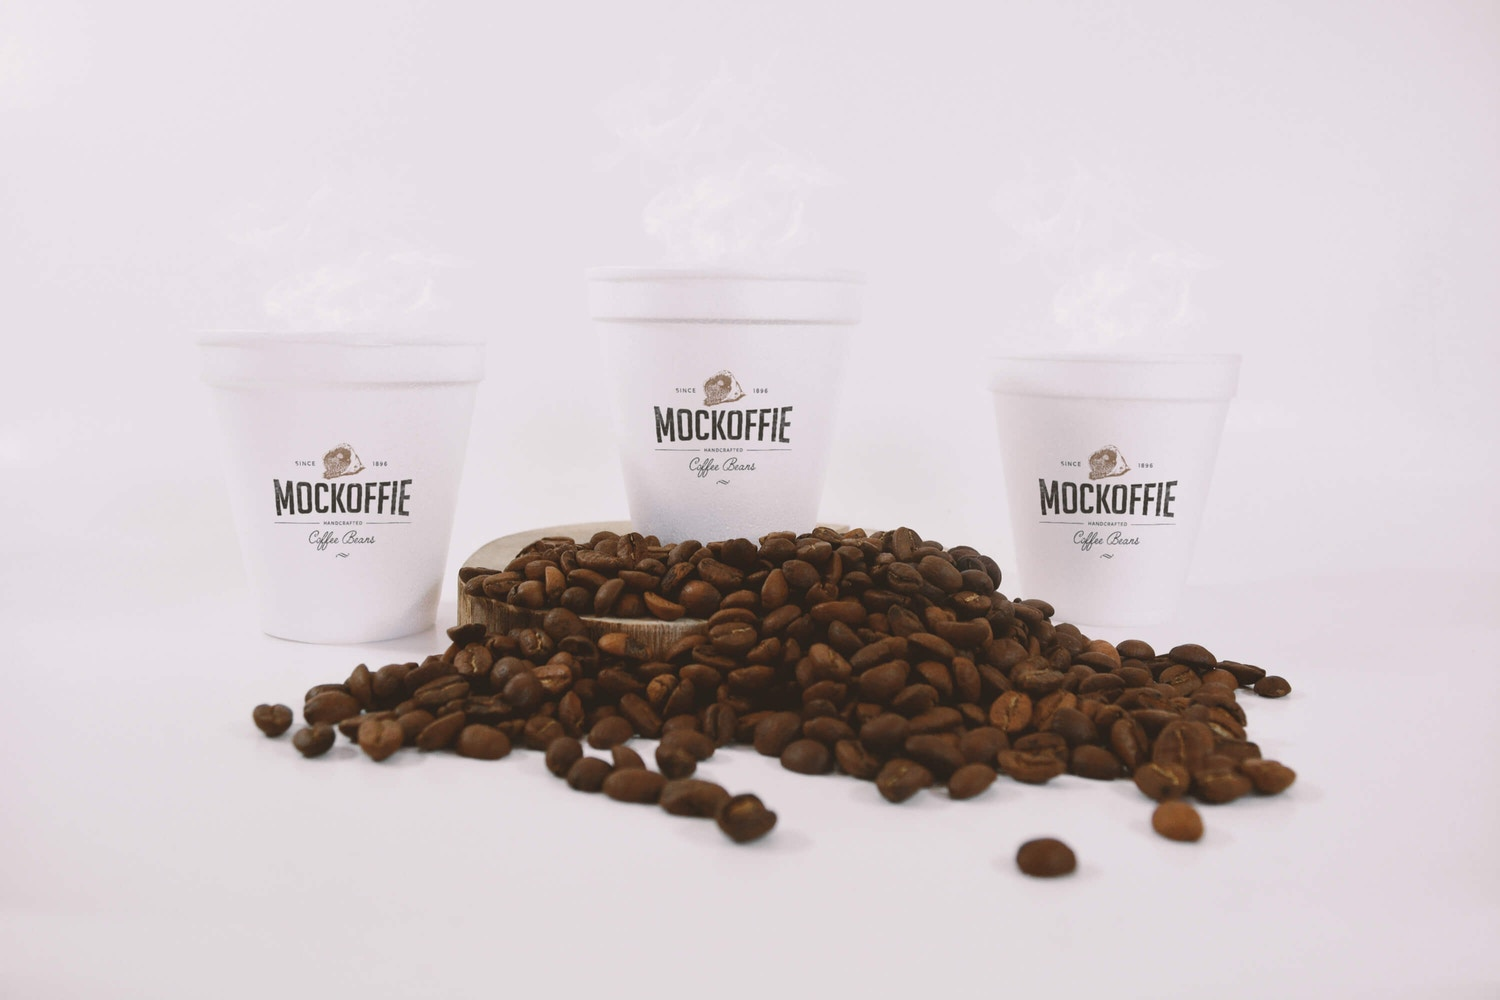 Coffee Cups Mockup by Eduardo Mejia on Original Mockups